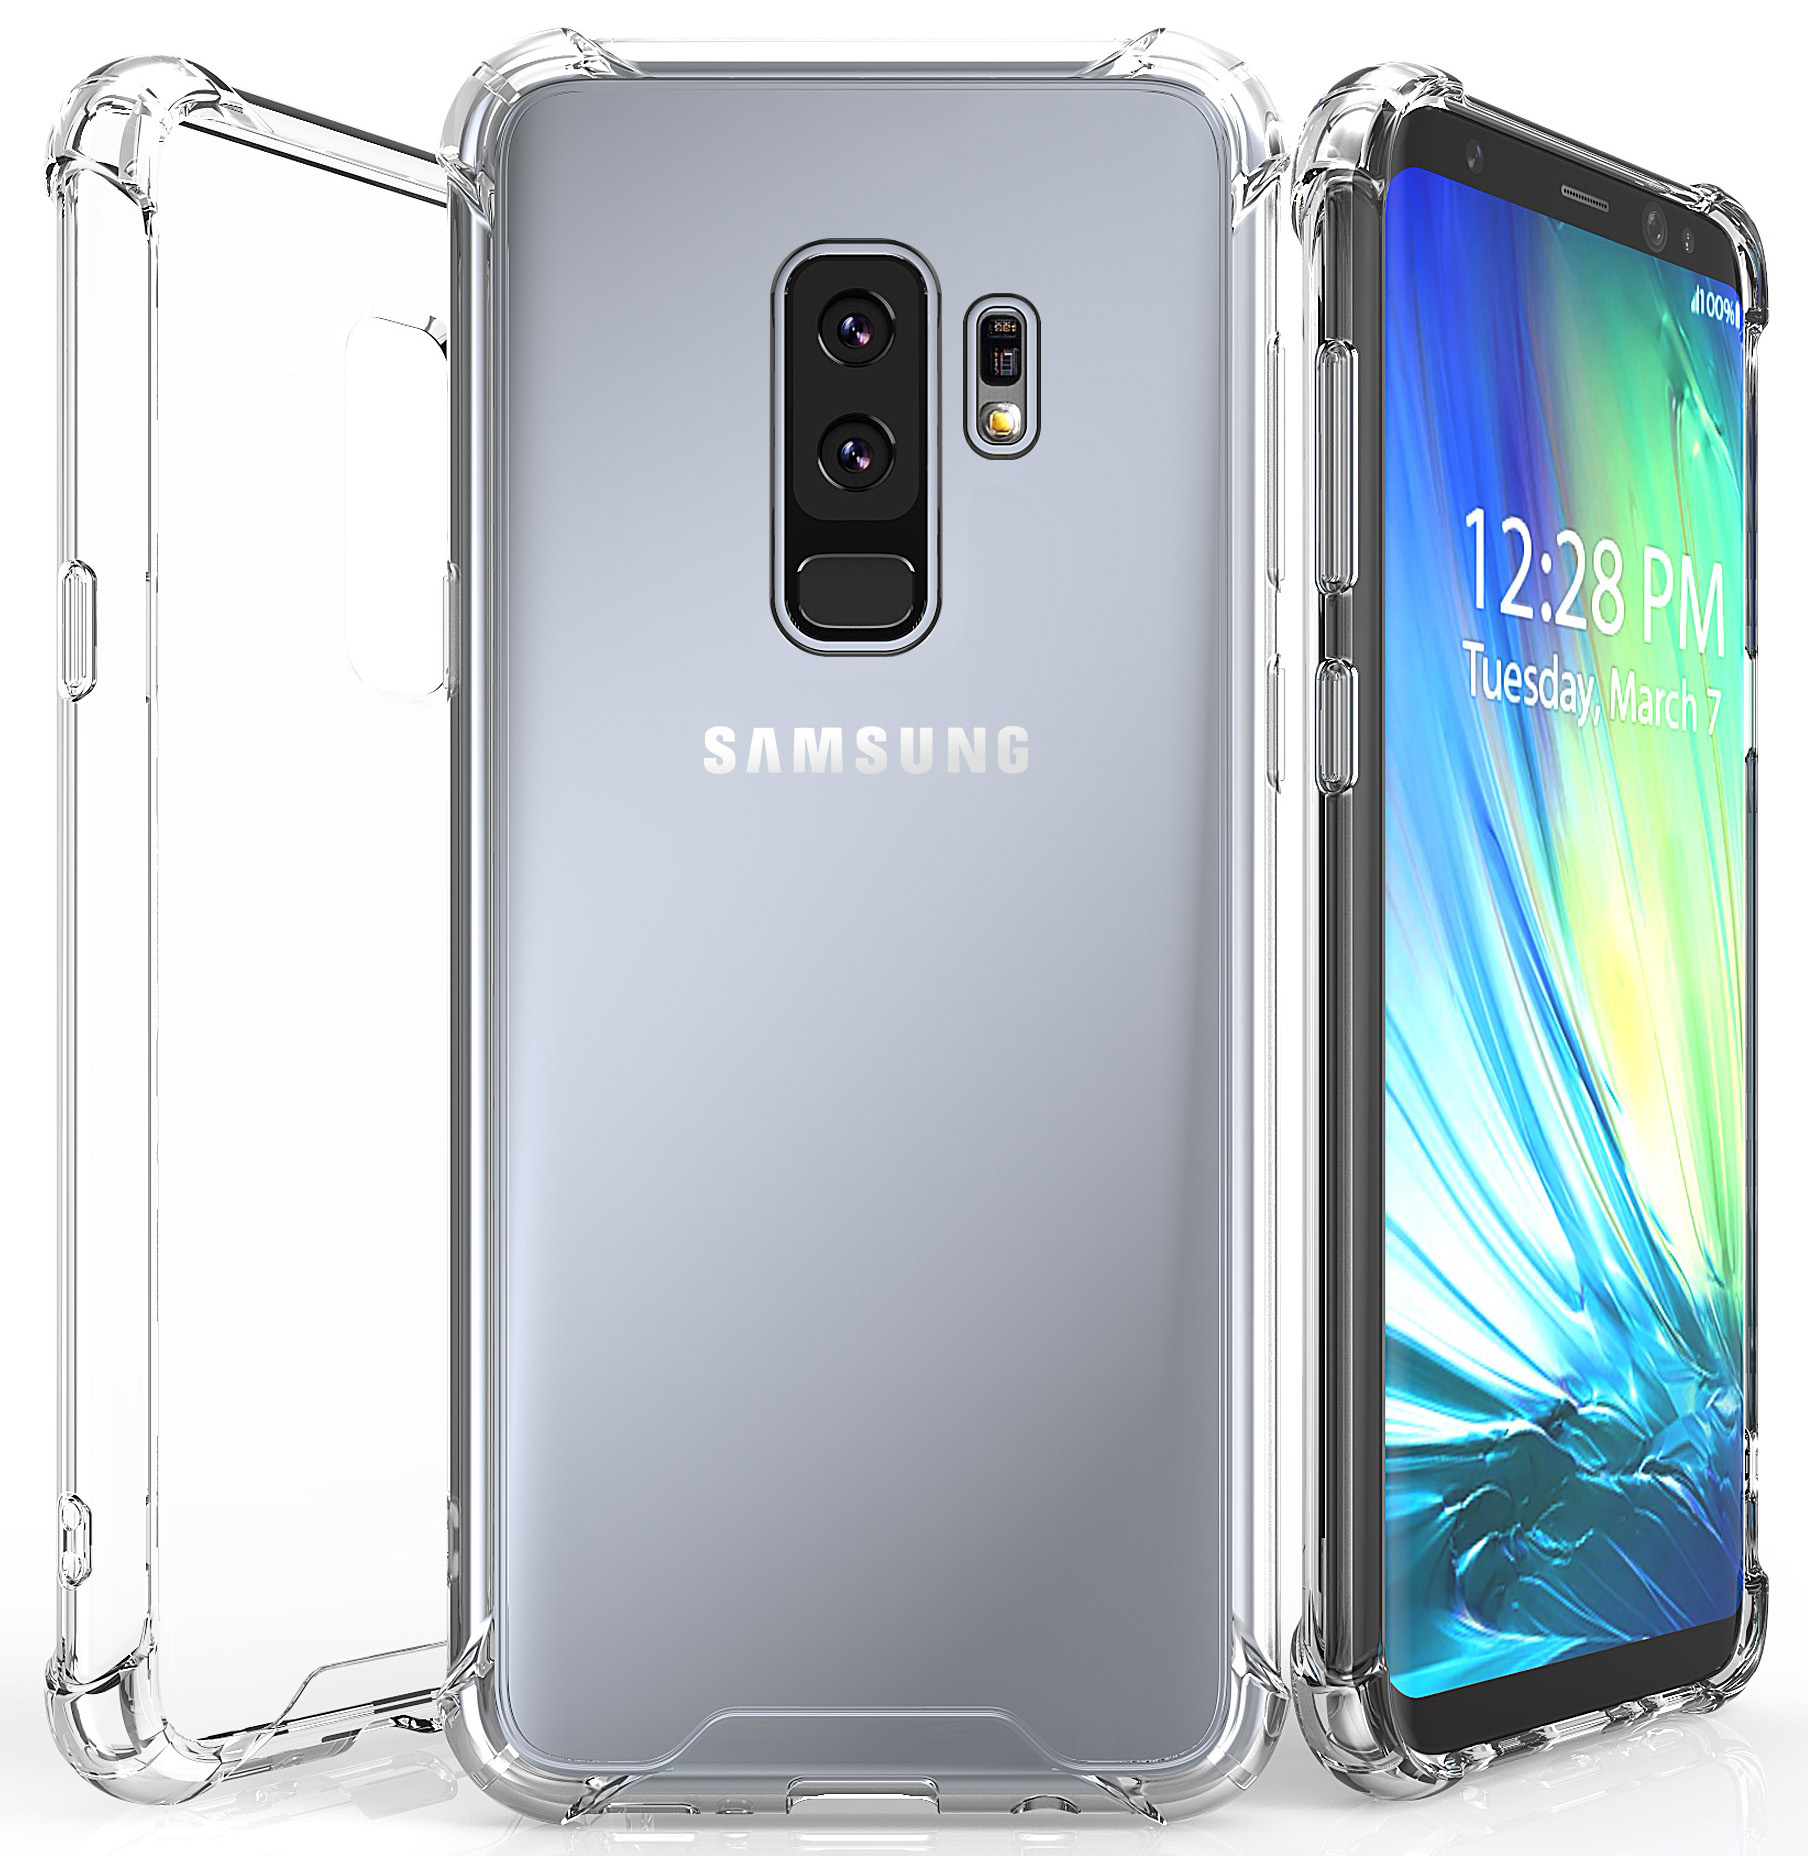 buy popular e6bb6 1cae5 Details about AQUAFLEX ANTI-SHOCK CLEAR CASE COVER HARD COVER FOR SAMSUNG  GALAXY S9 PLUS, S9+